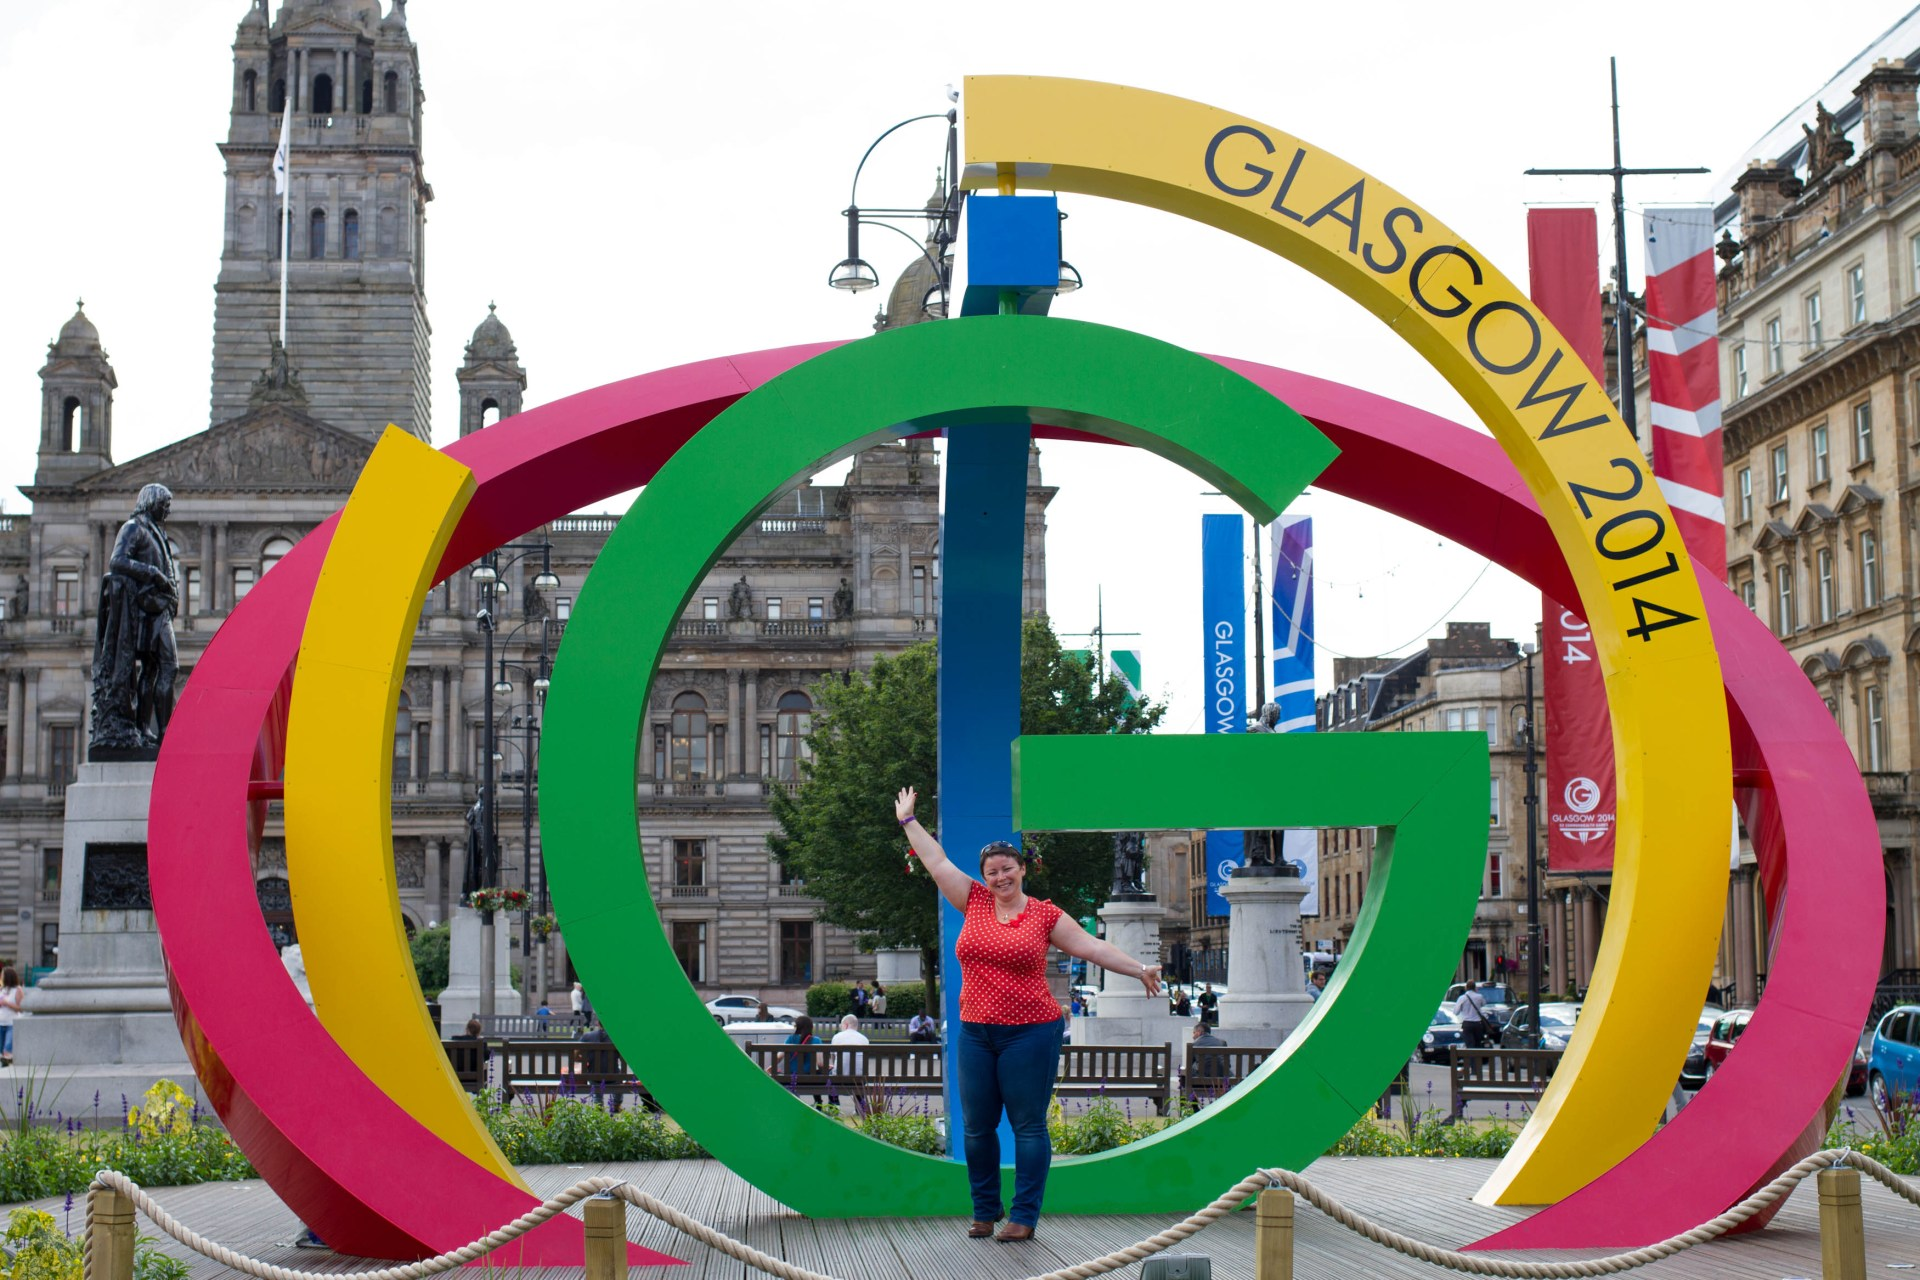 Big G, Glasgow 2014, Scotland Travel Blog, Travel Guide